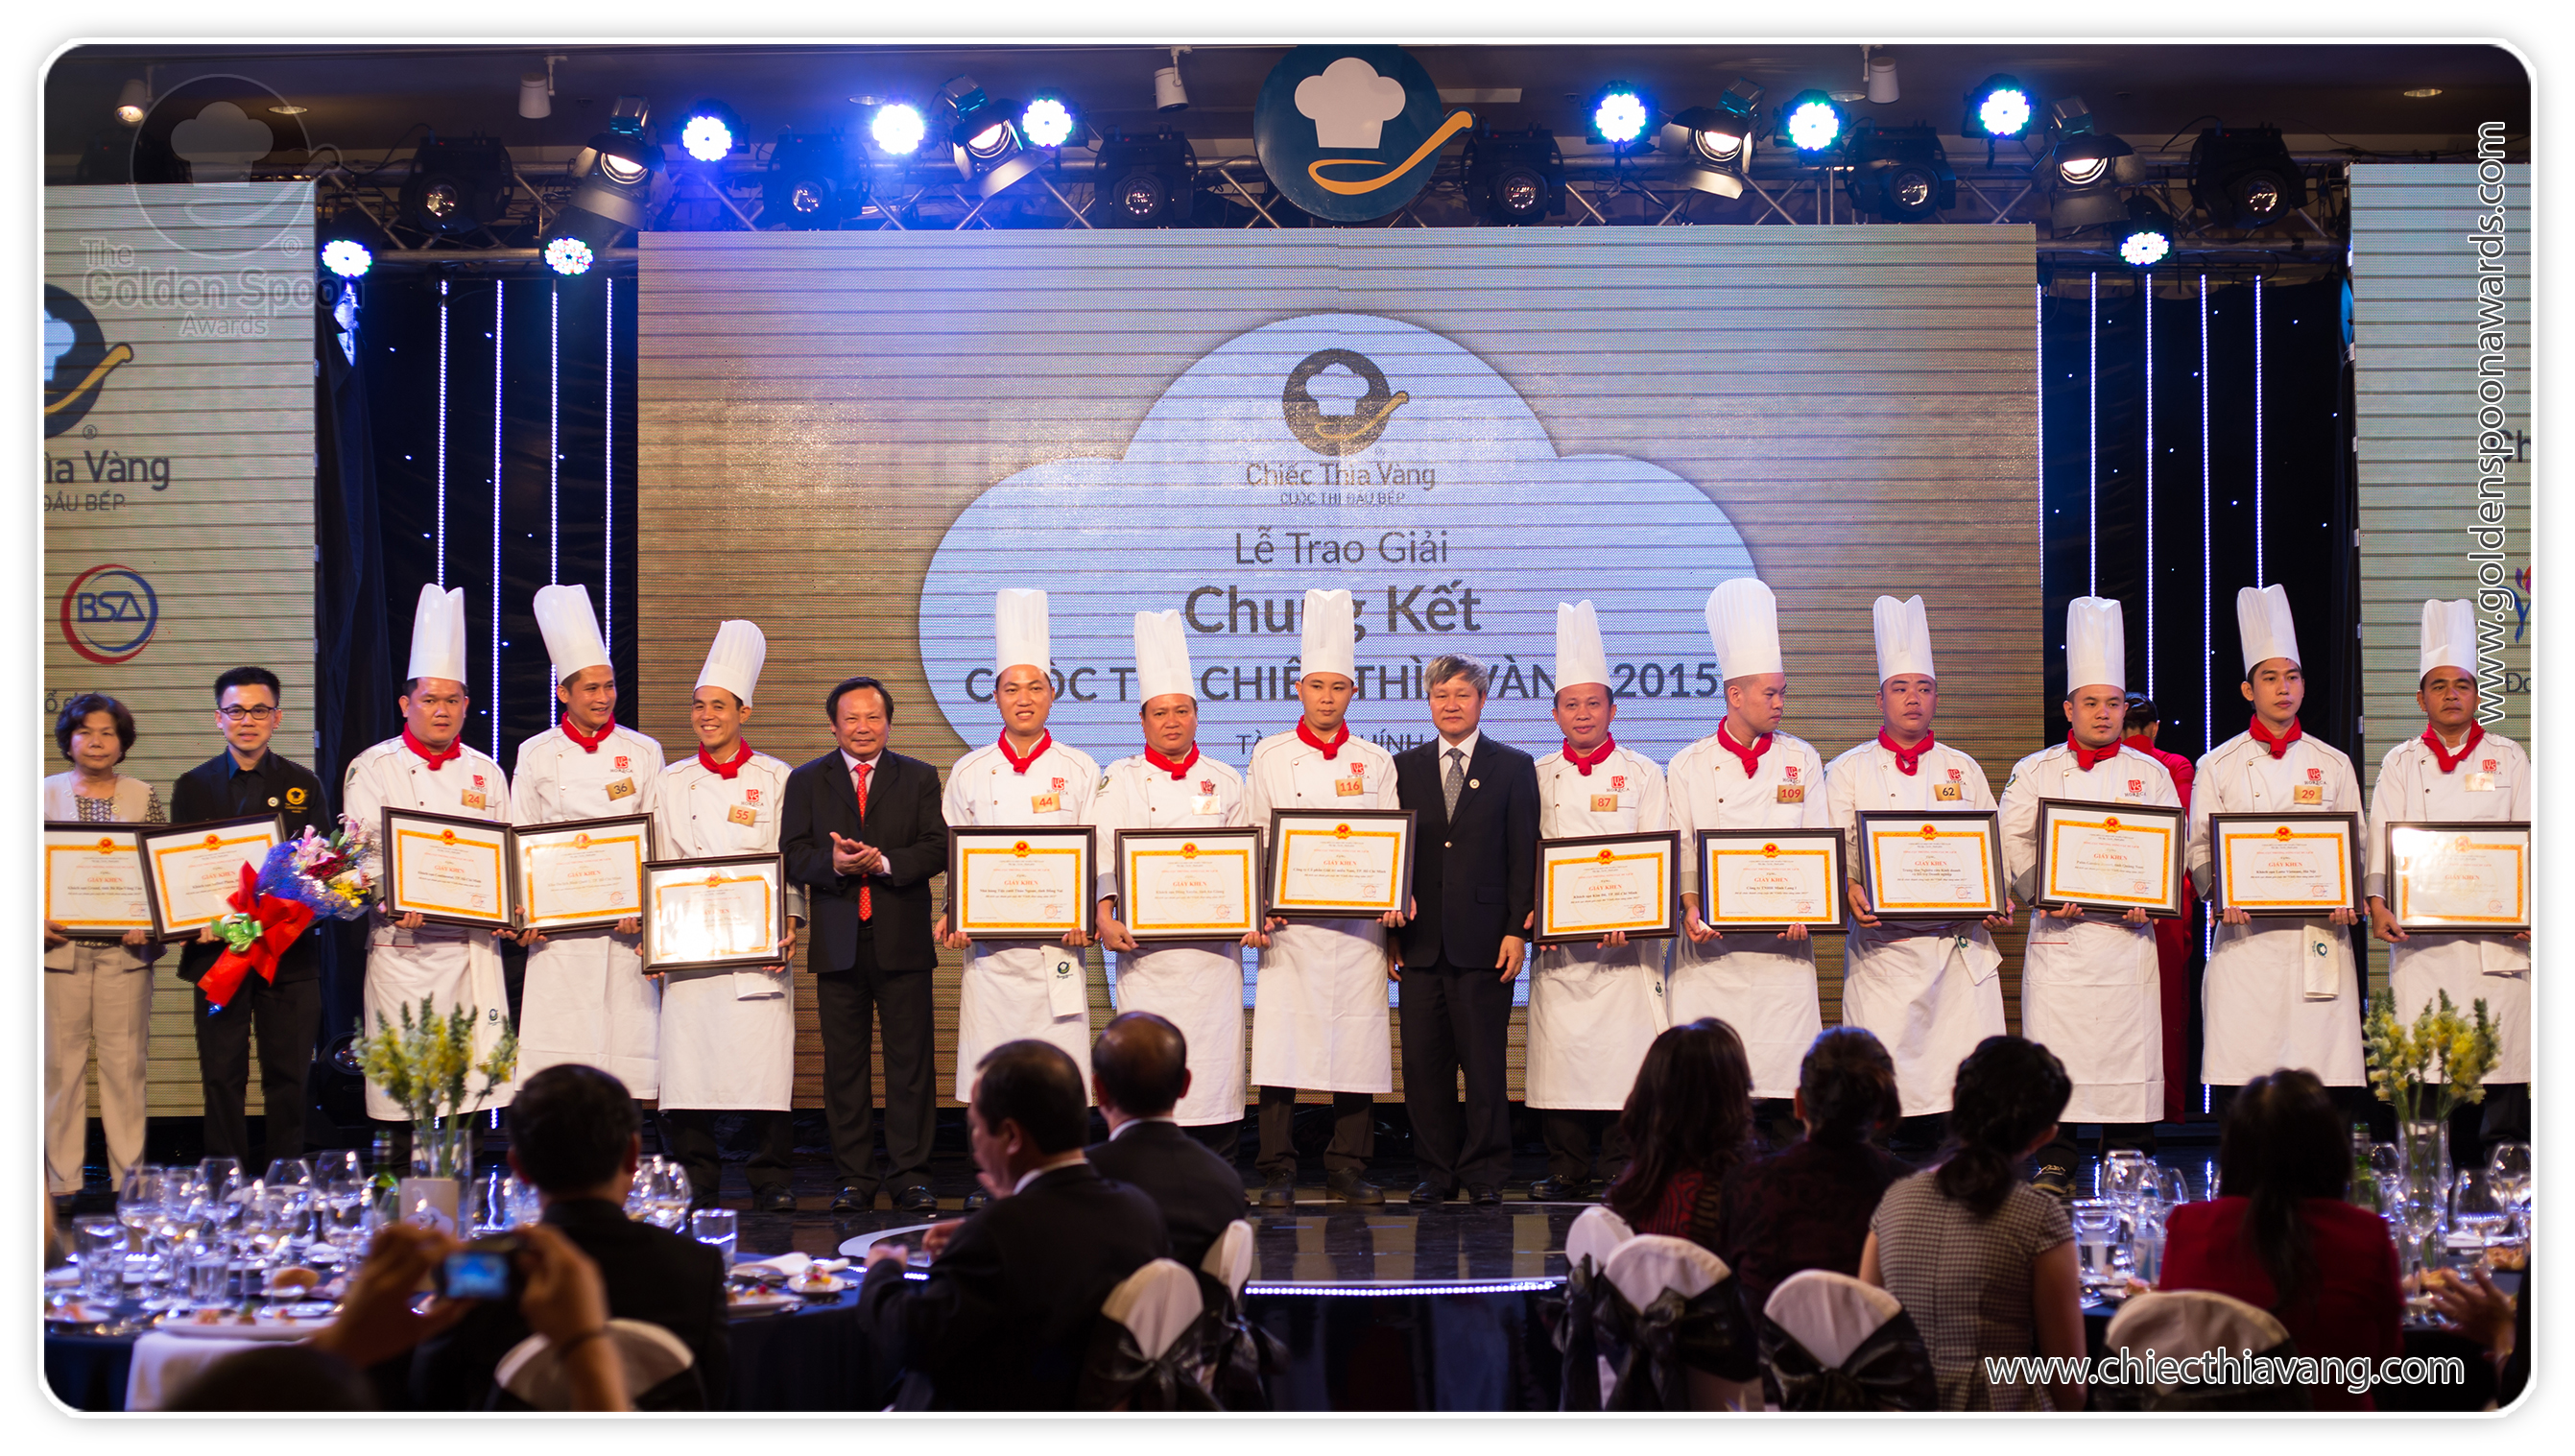 Awards ceremony of the 2015 Golden Spoon contest